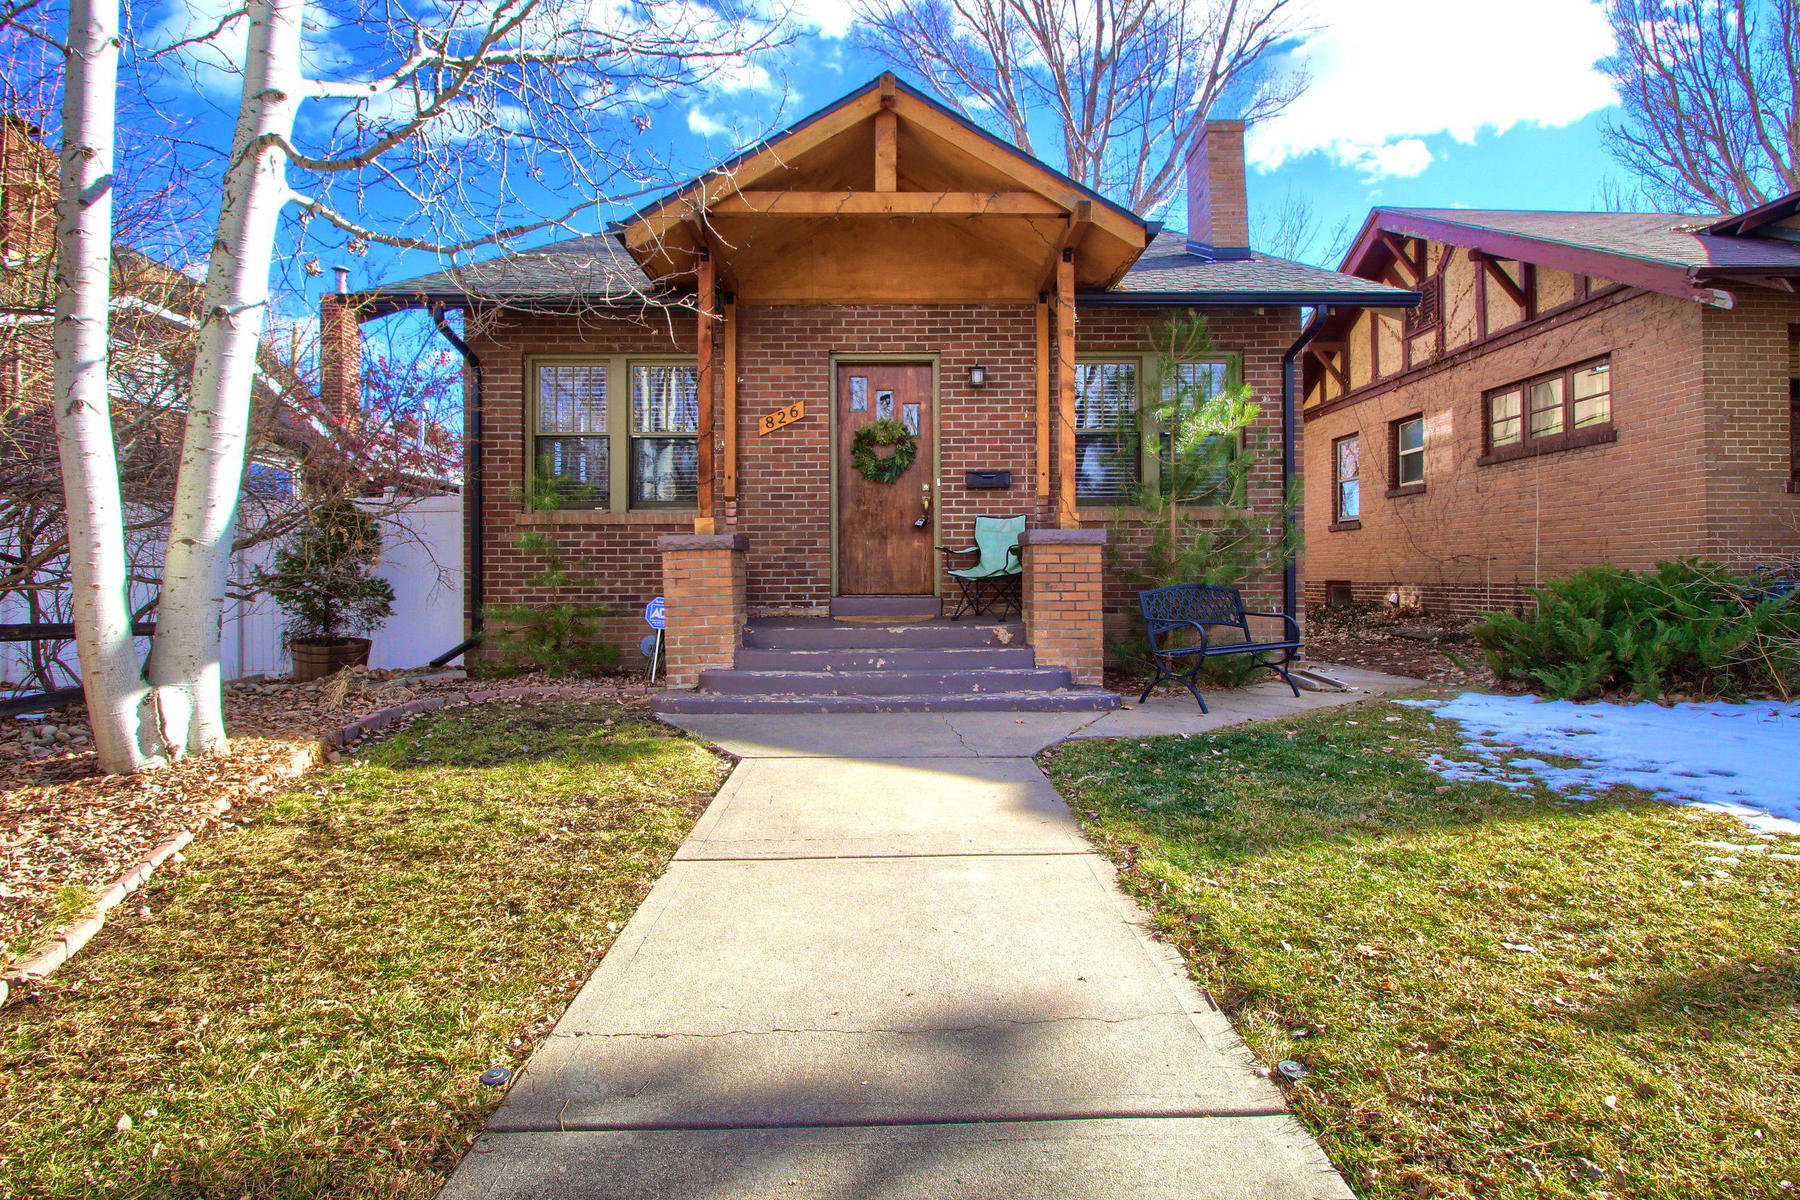 Single Family Home for Active at Charming 3 bedroom, 2 bathroom bungalow in the heart of Congress Park! 826 Madison St Denver, Colorado 80206 United States